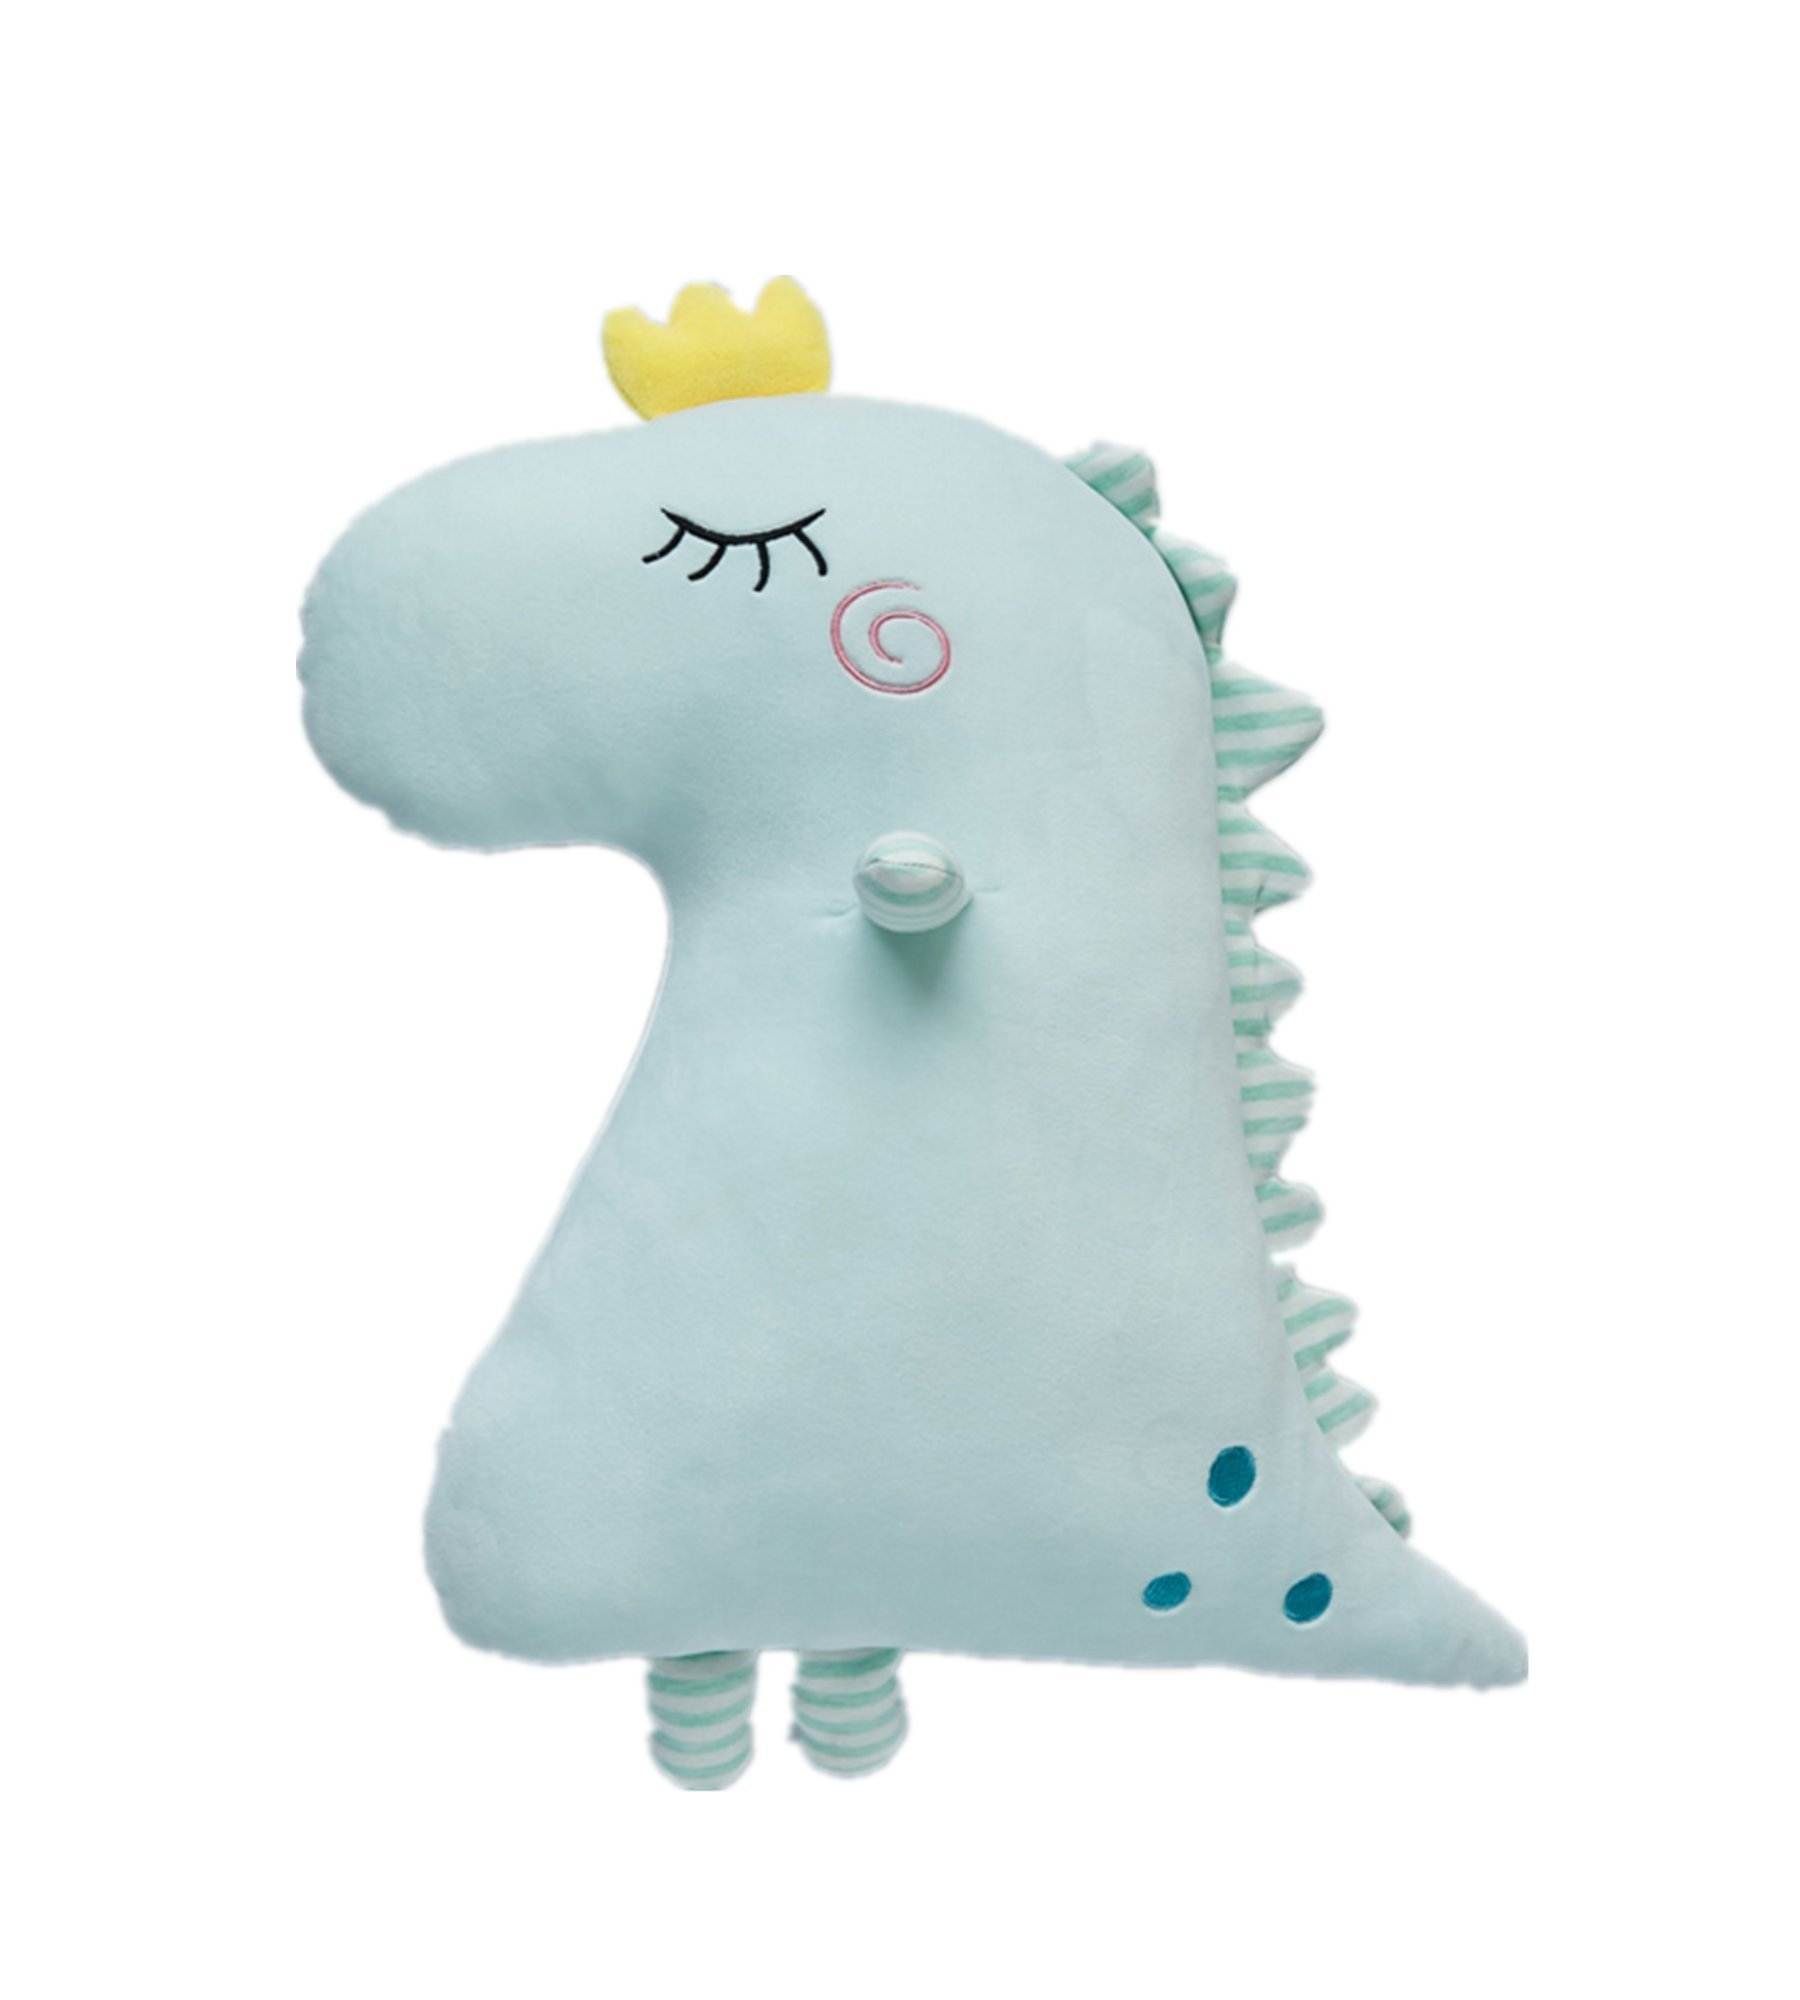 mywaxberry New Dinosaur Pillow Down Cotton Sleeping Doll Plush Toy Doll (blue)